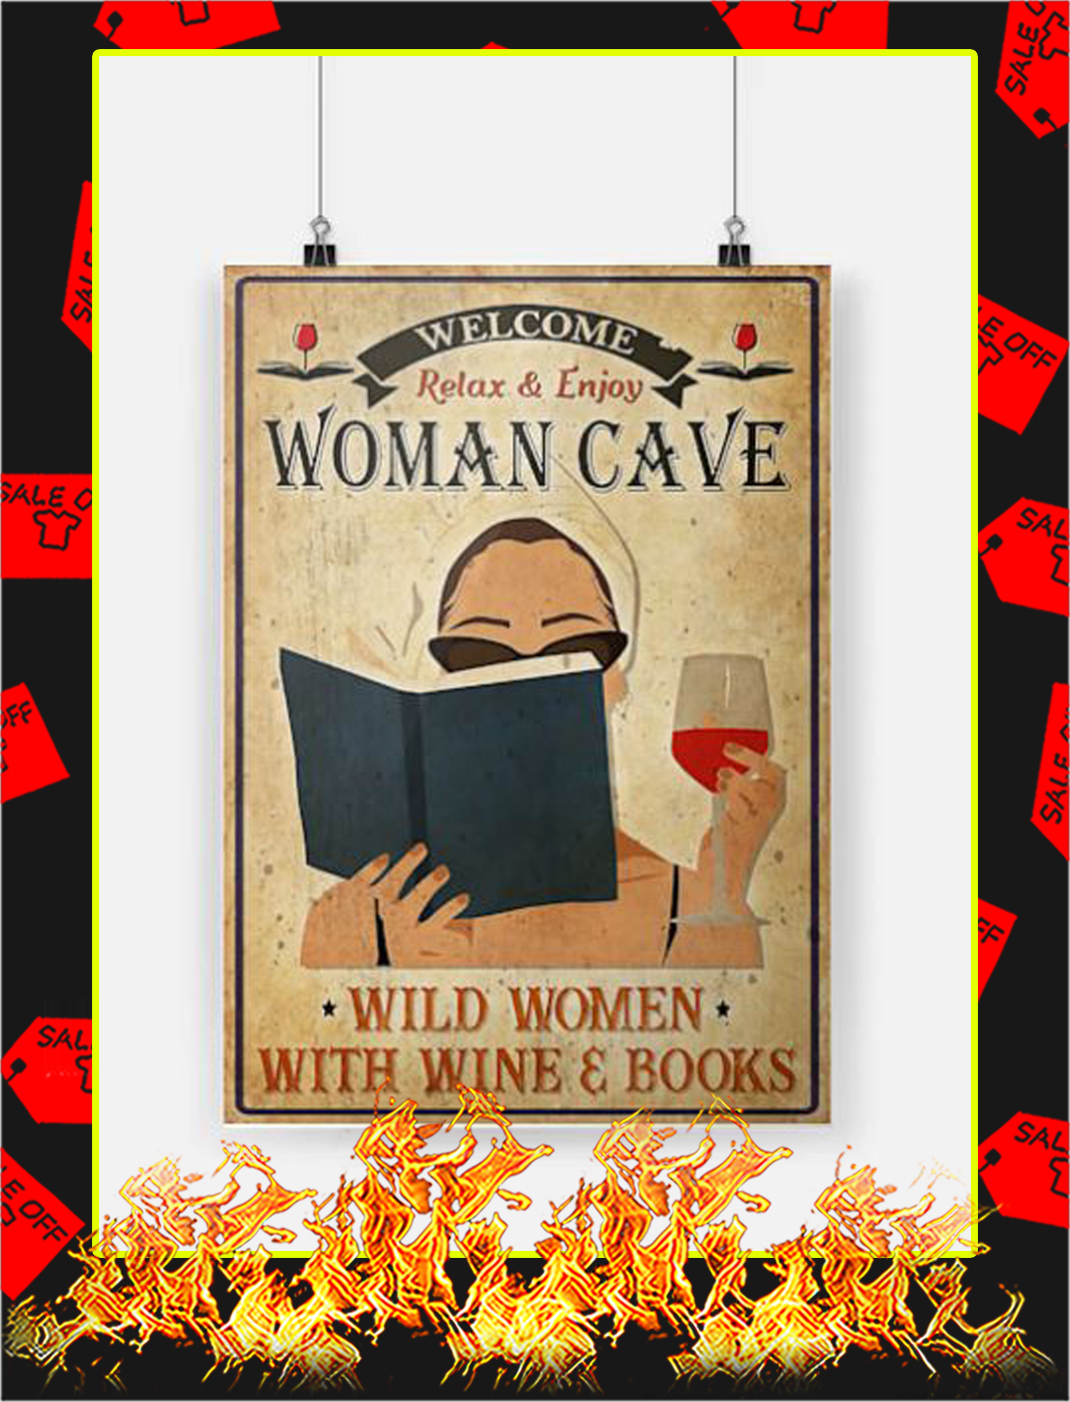 Wine and books welcome relax and enjoy woman cave poster - A4